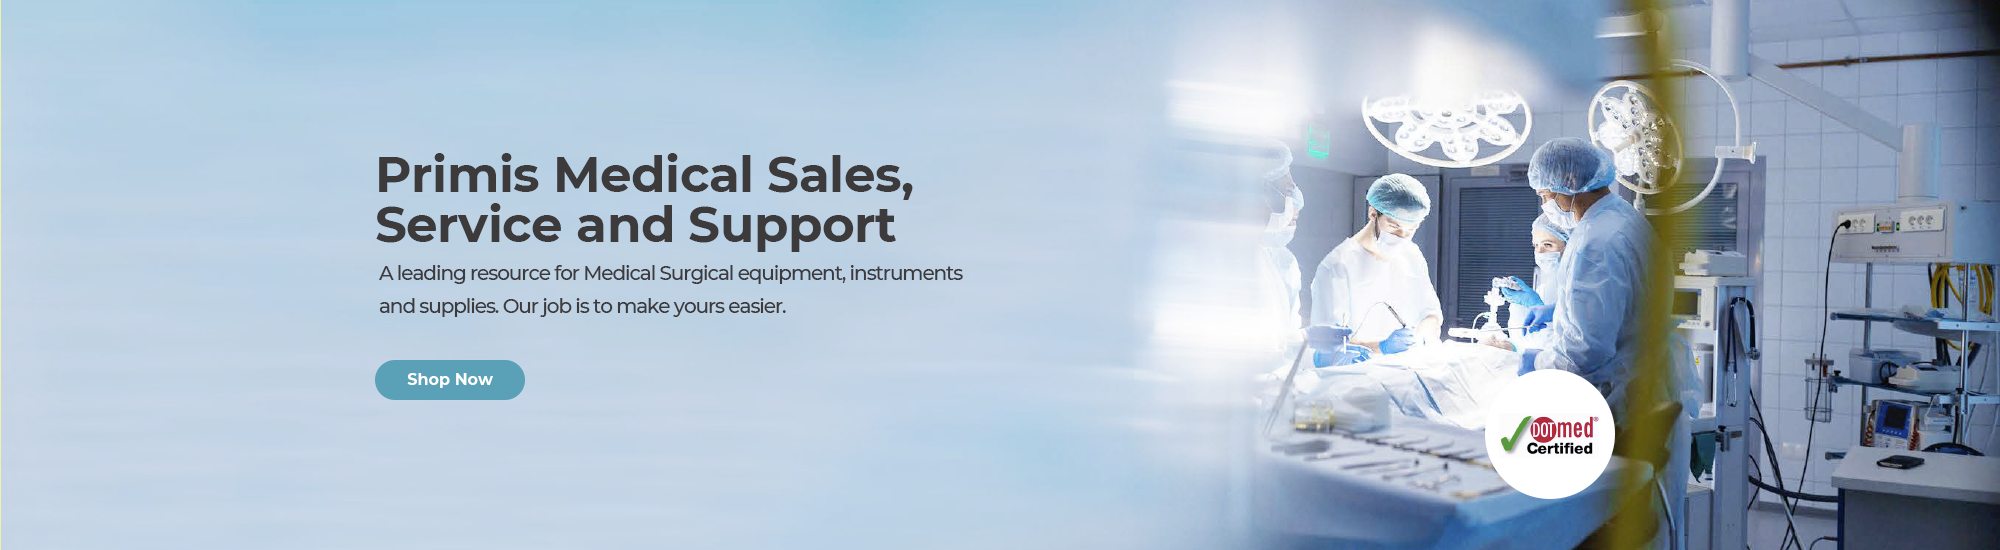 Primis Medical Sales, Service and Support